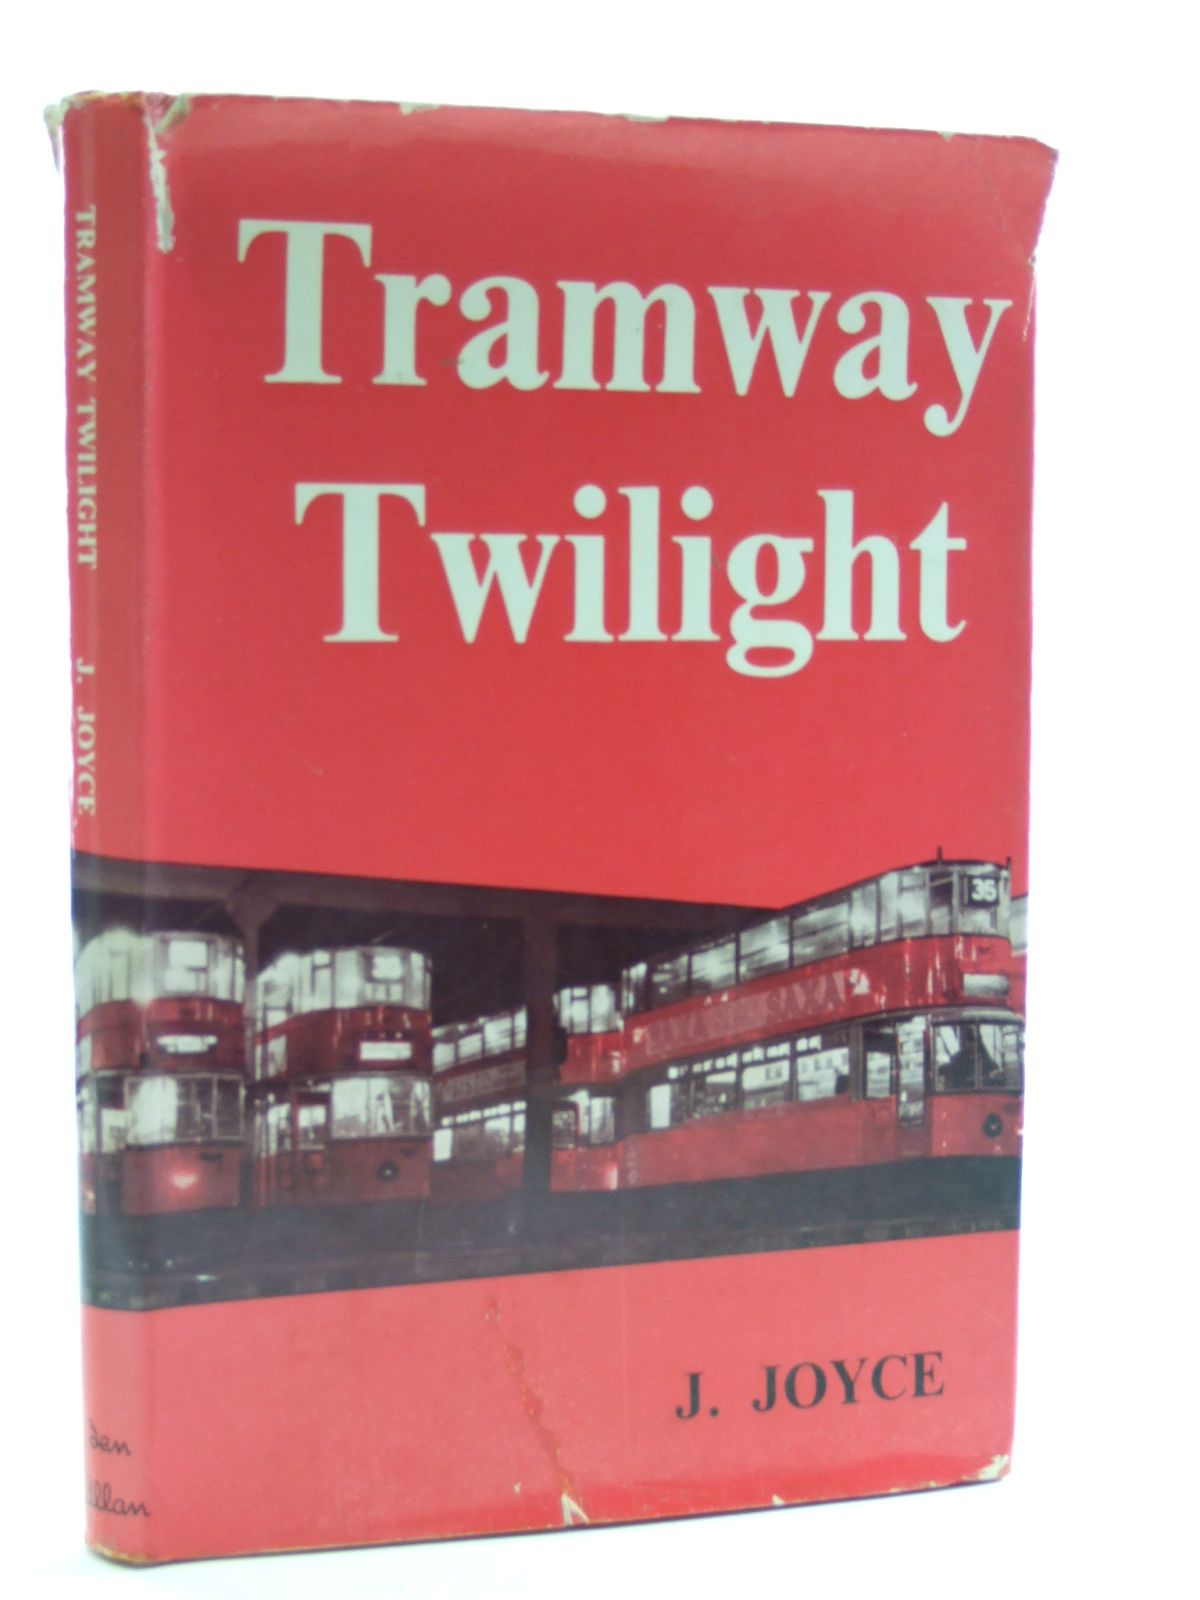 Photo of TRAMWAY TWILIGHT written by Joyce, J. published by Ian Allan Ltd. (STOCK CODE: 1603414)  for sale by Stella & Rose's Books